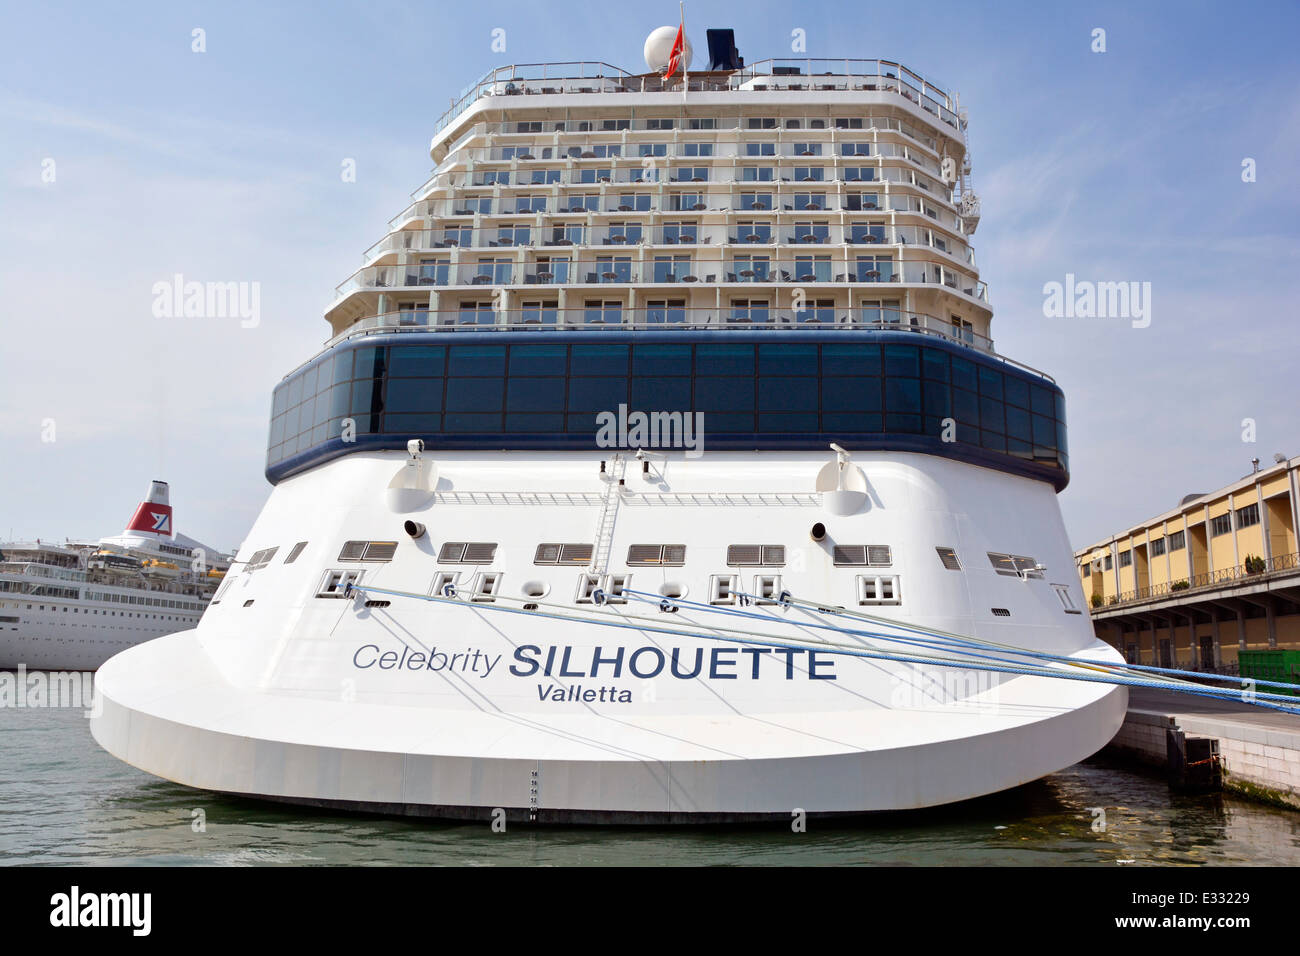 Stern View Of Celebrity Silhouette Cruise Liner And